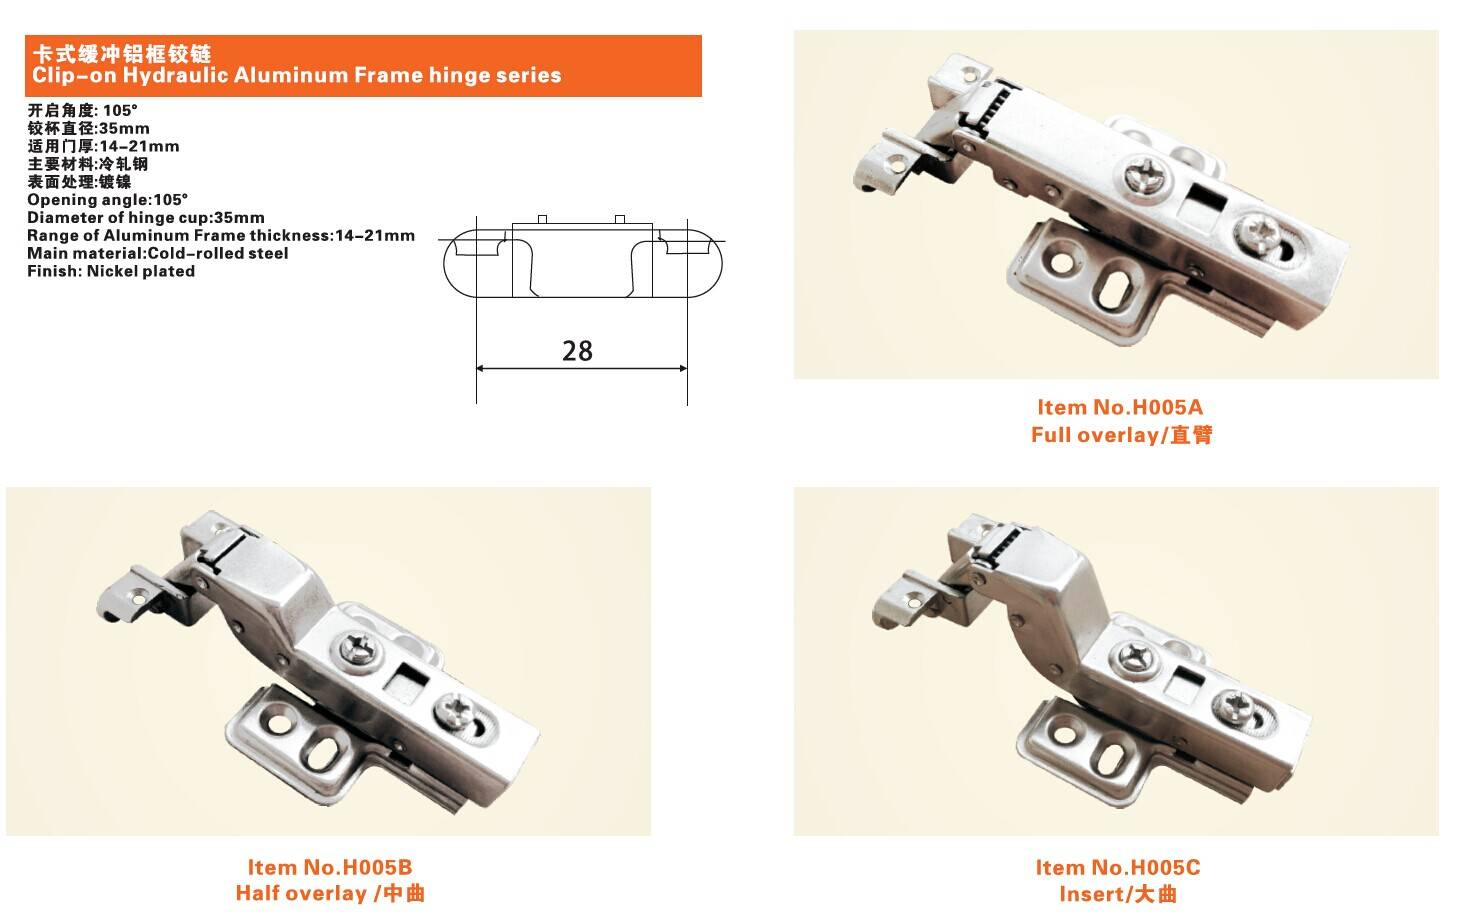 Clip-on Hydraulic Aluminum Frame Concealed hinge series